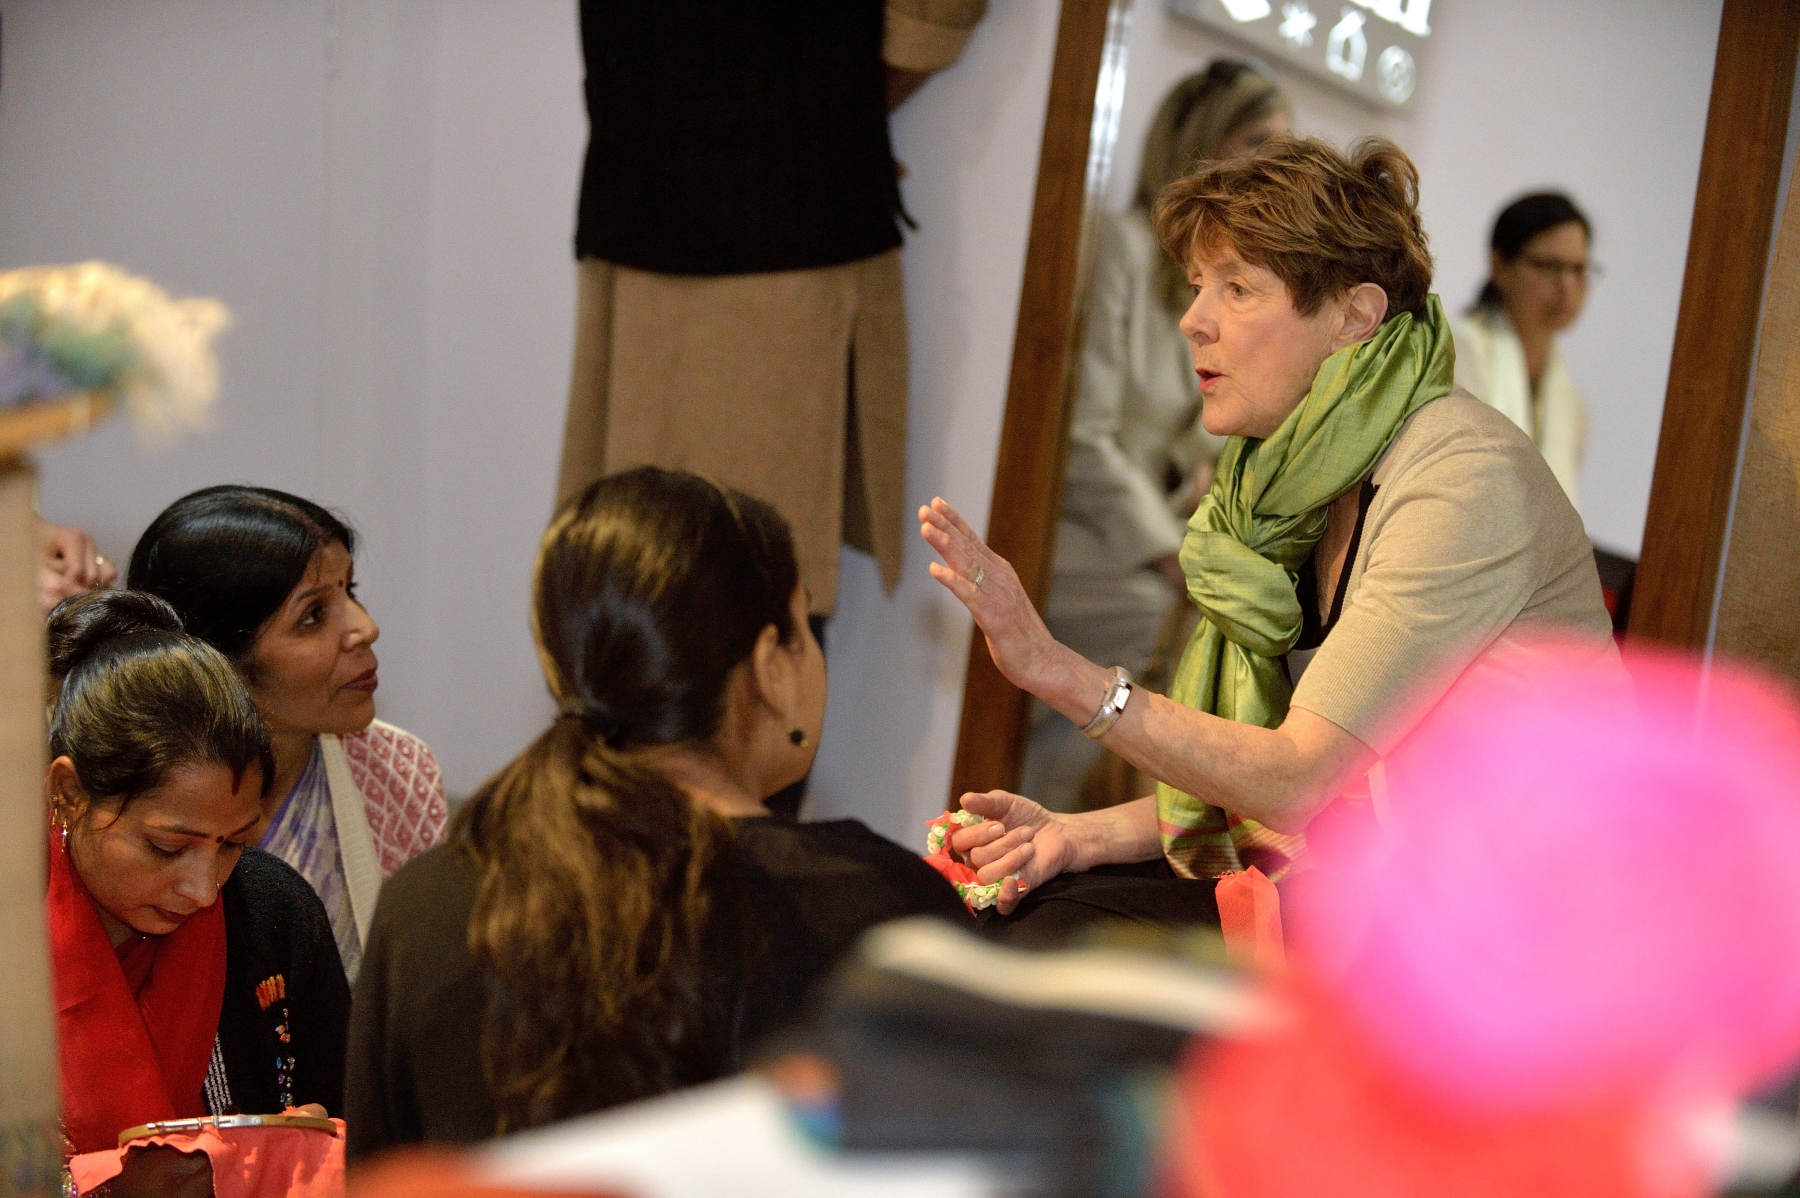 Before leaving, Her Excellency spoke with female artisans.